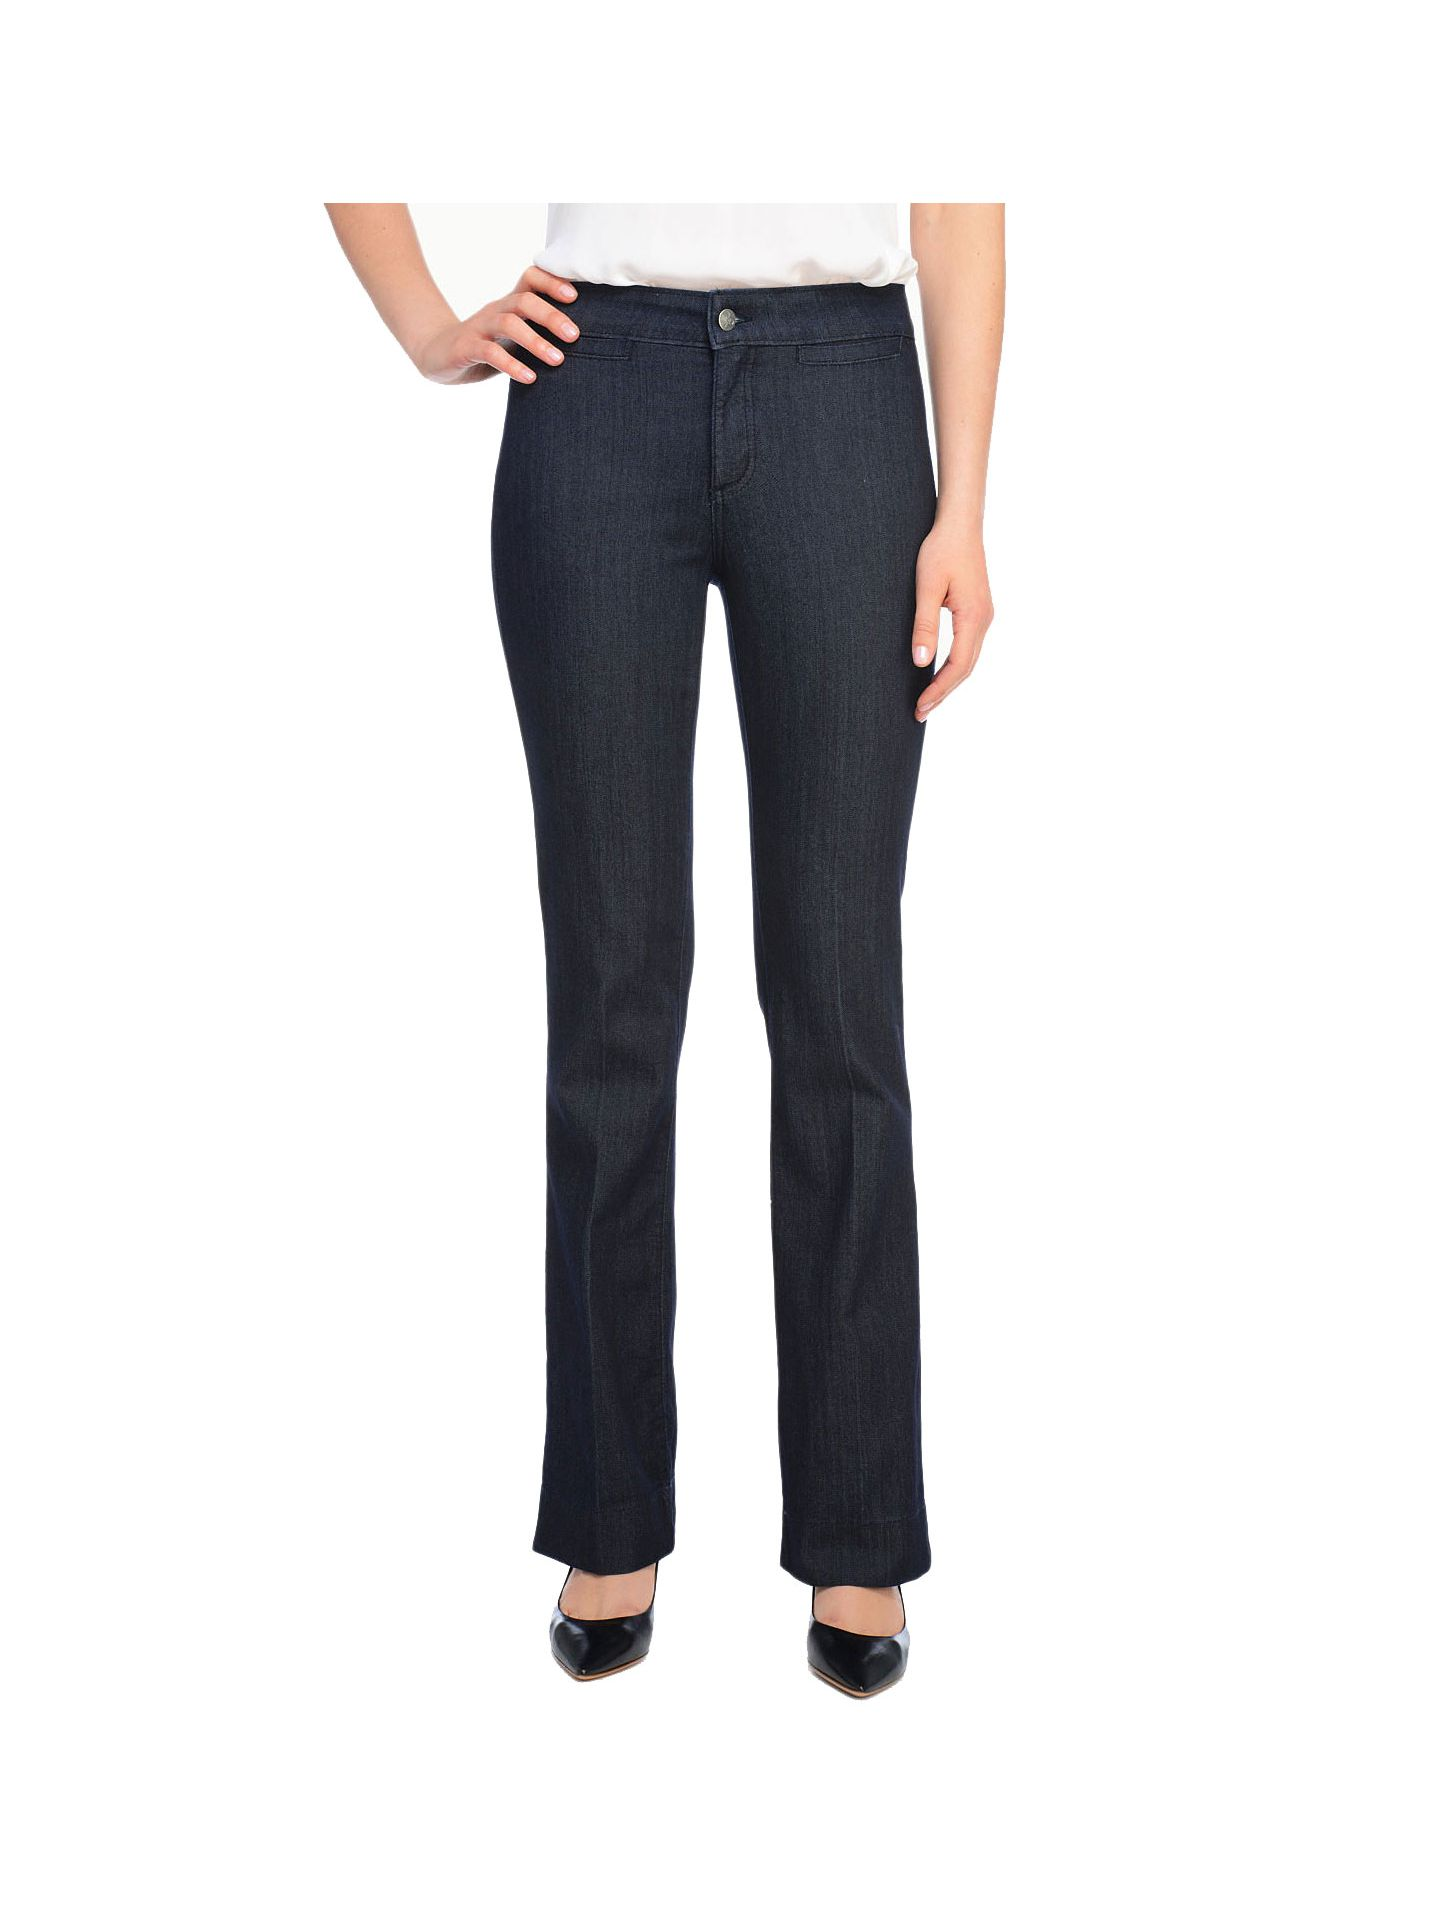 NYDJ Petite Michelle Trousers - Dark Enzyme - 2P